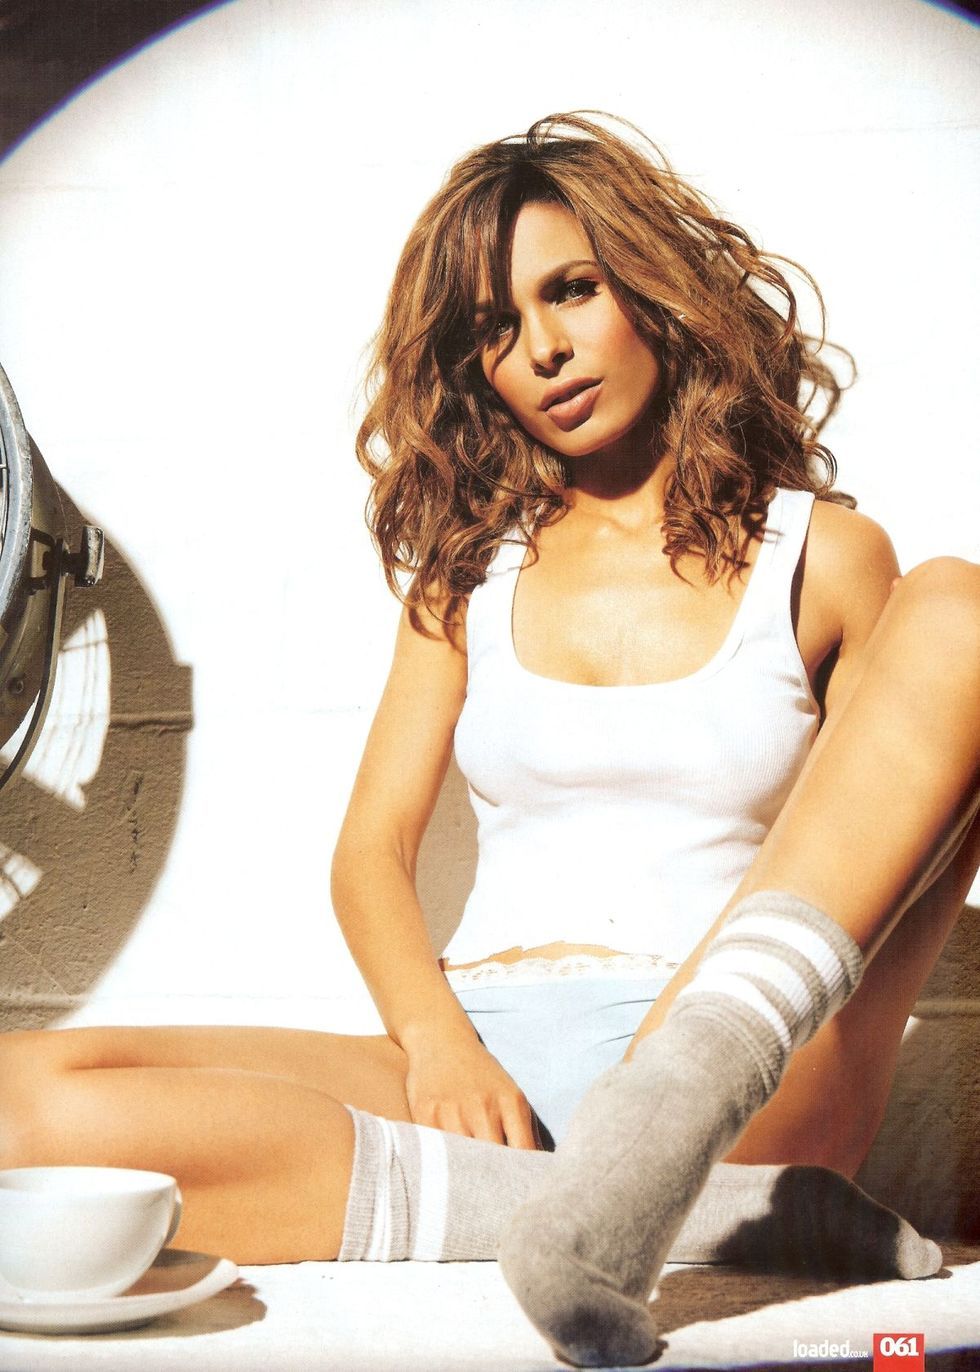 nadine-velazquez-loaded-magazine-december-2008-01